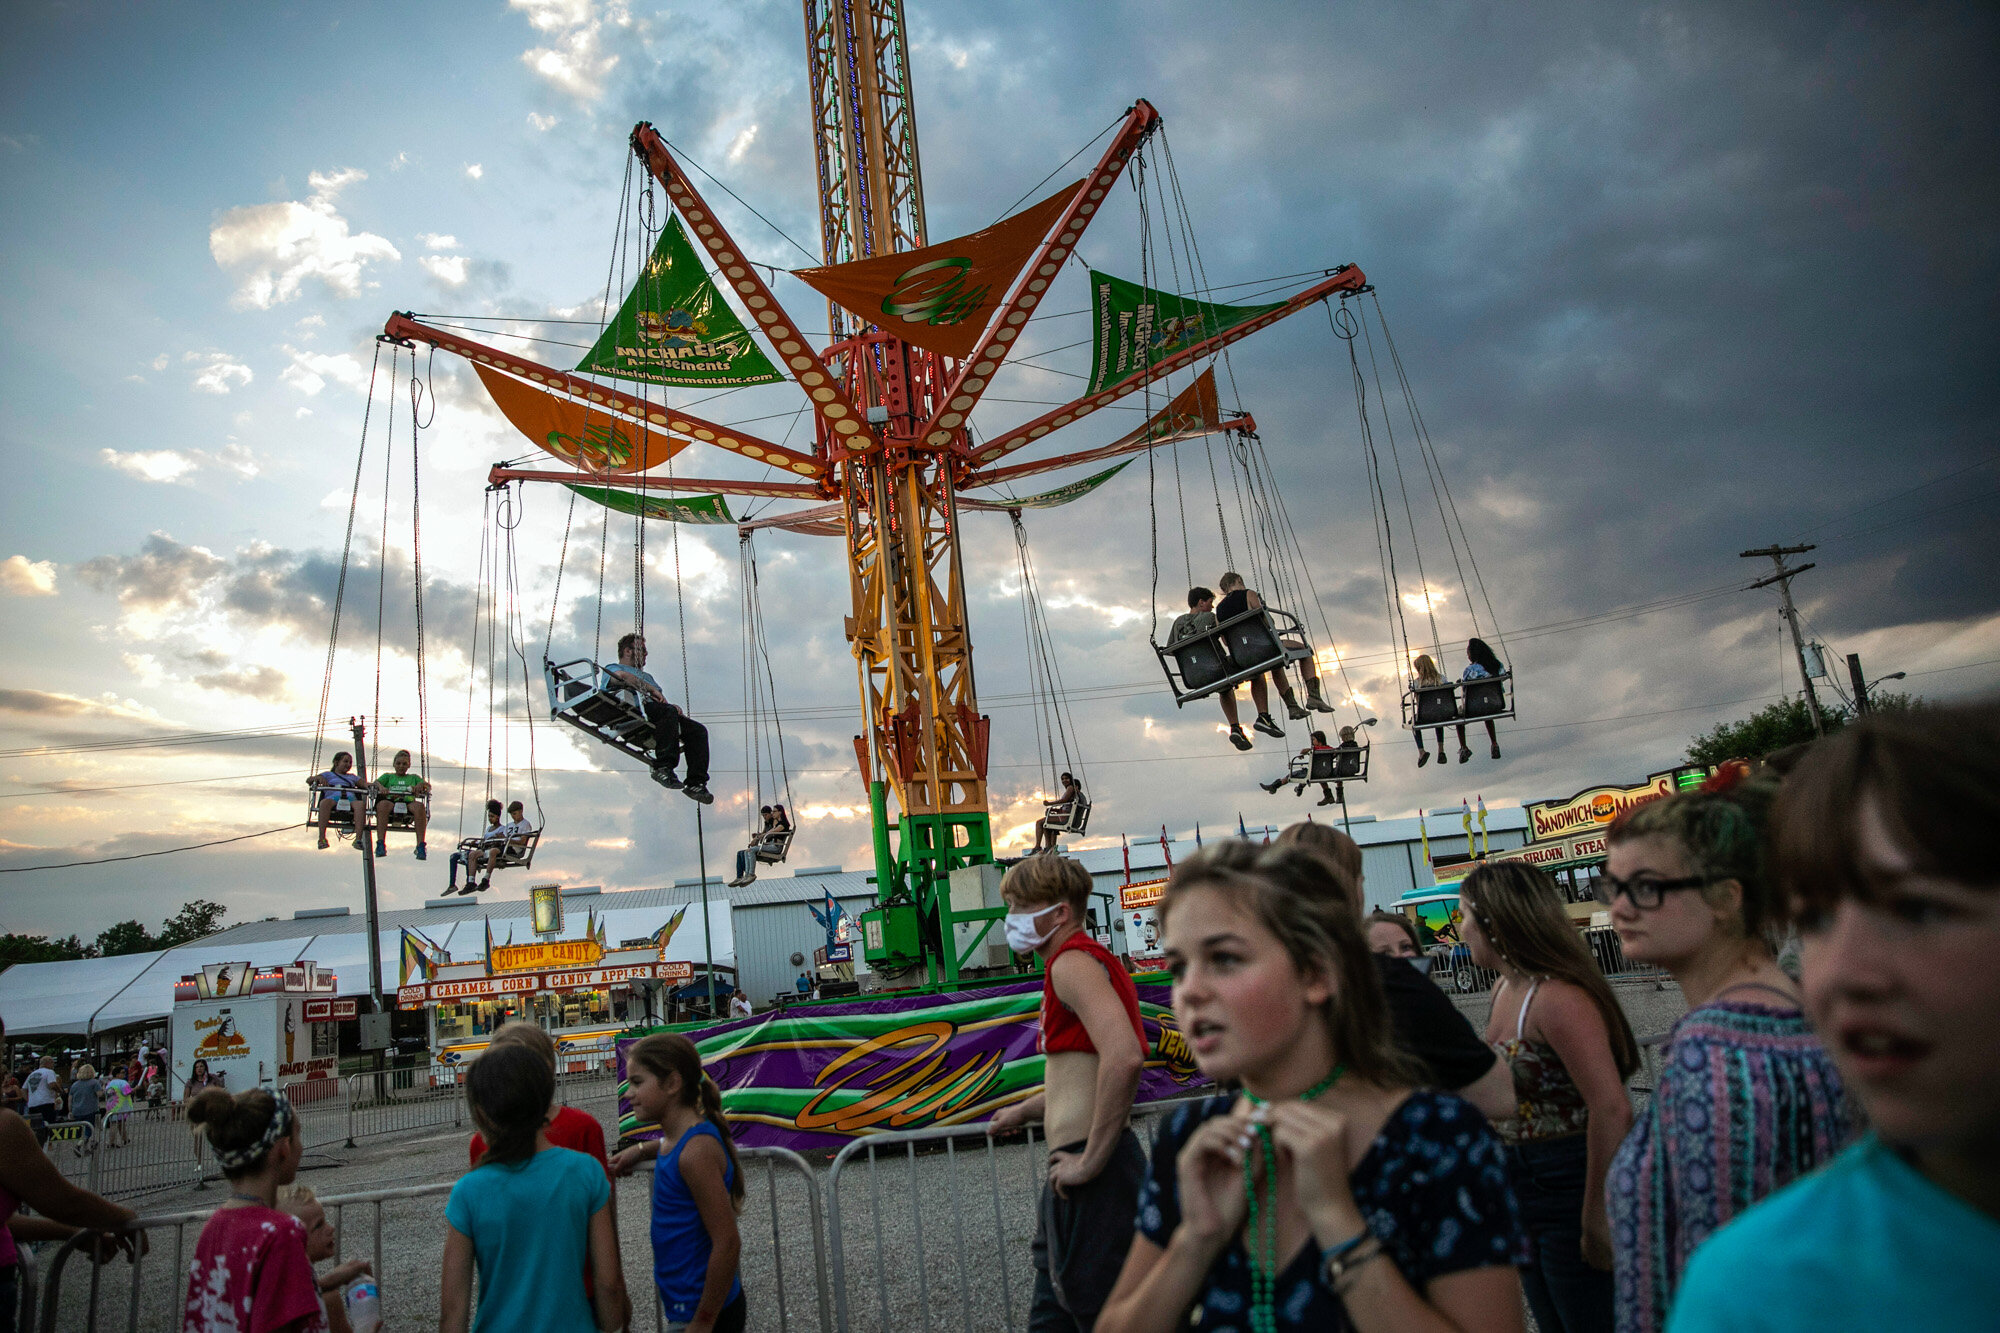 People wait to ride a revolving swing at the Perry State Fair in New Lexington, Ohio, on July 24, 2020. (AP Photo/Wong Maye-E)